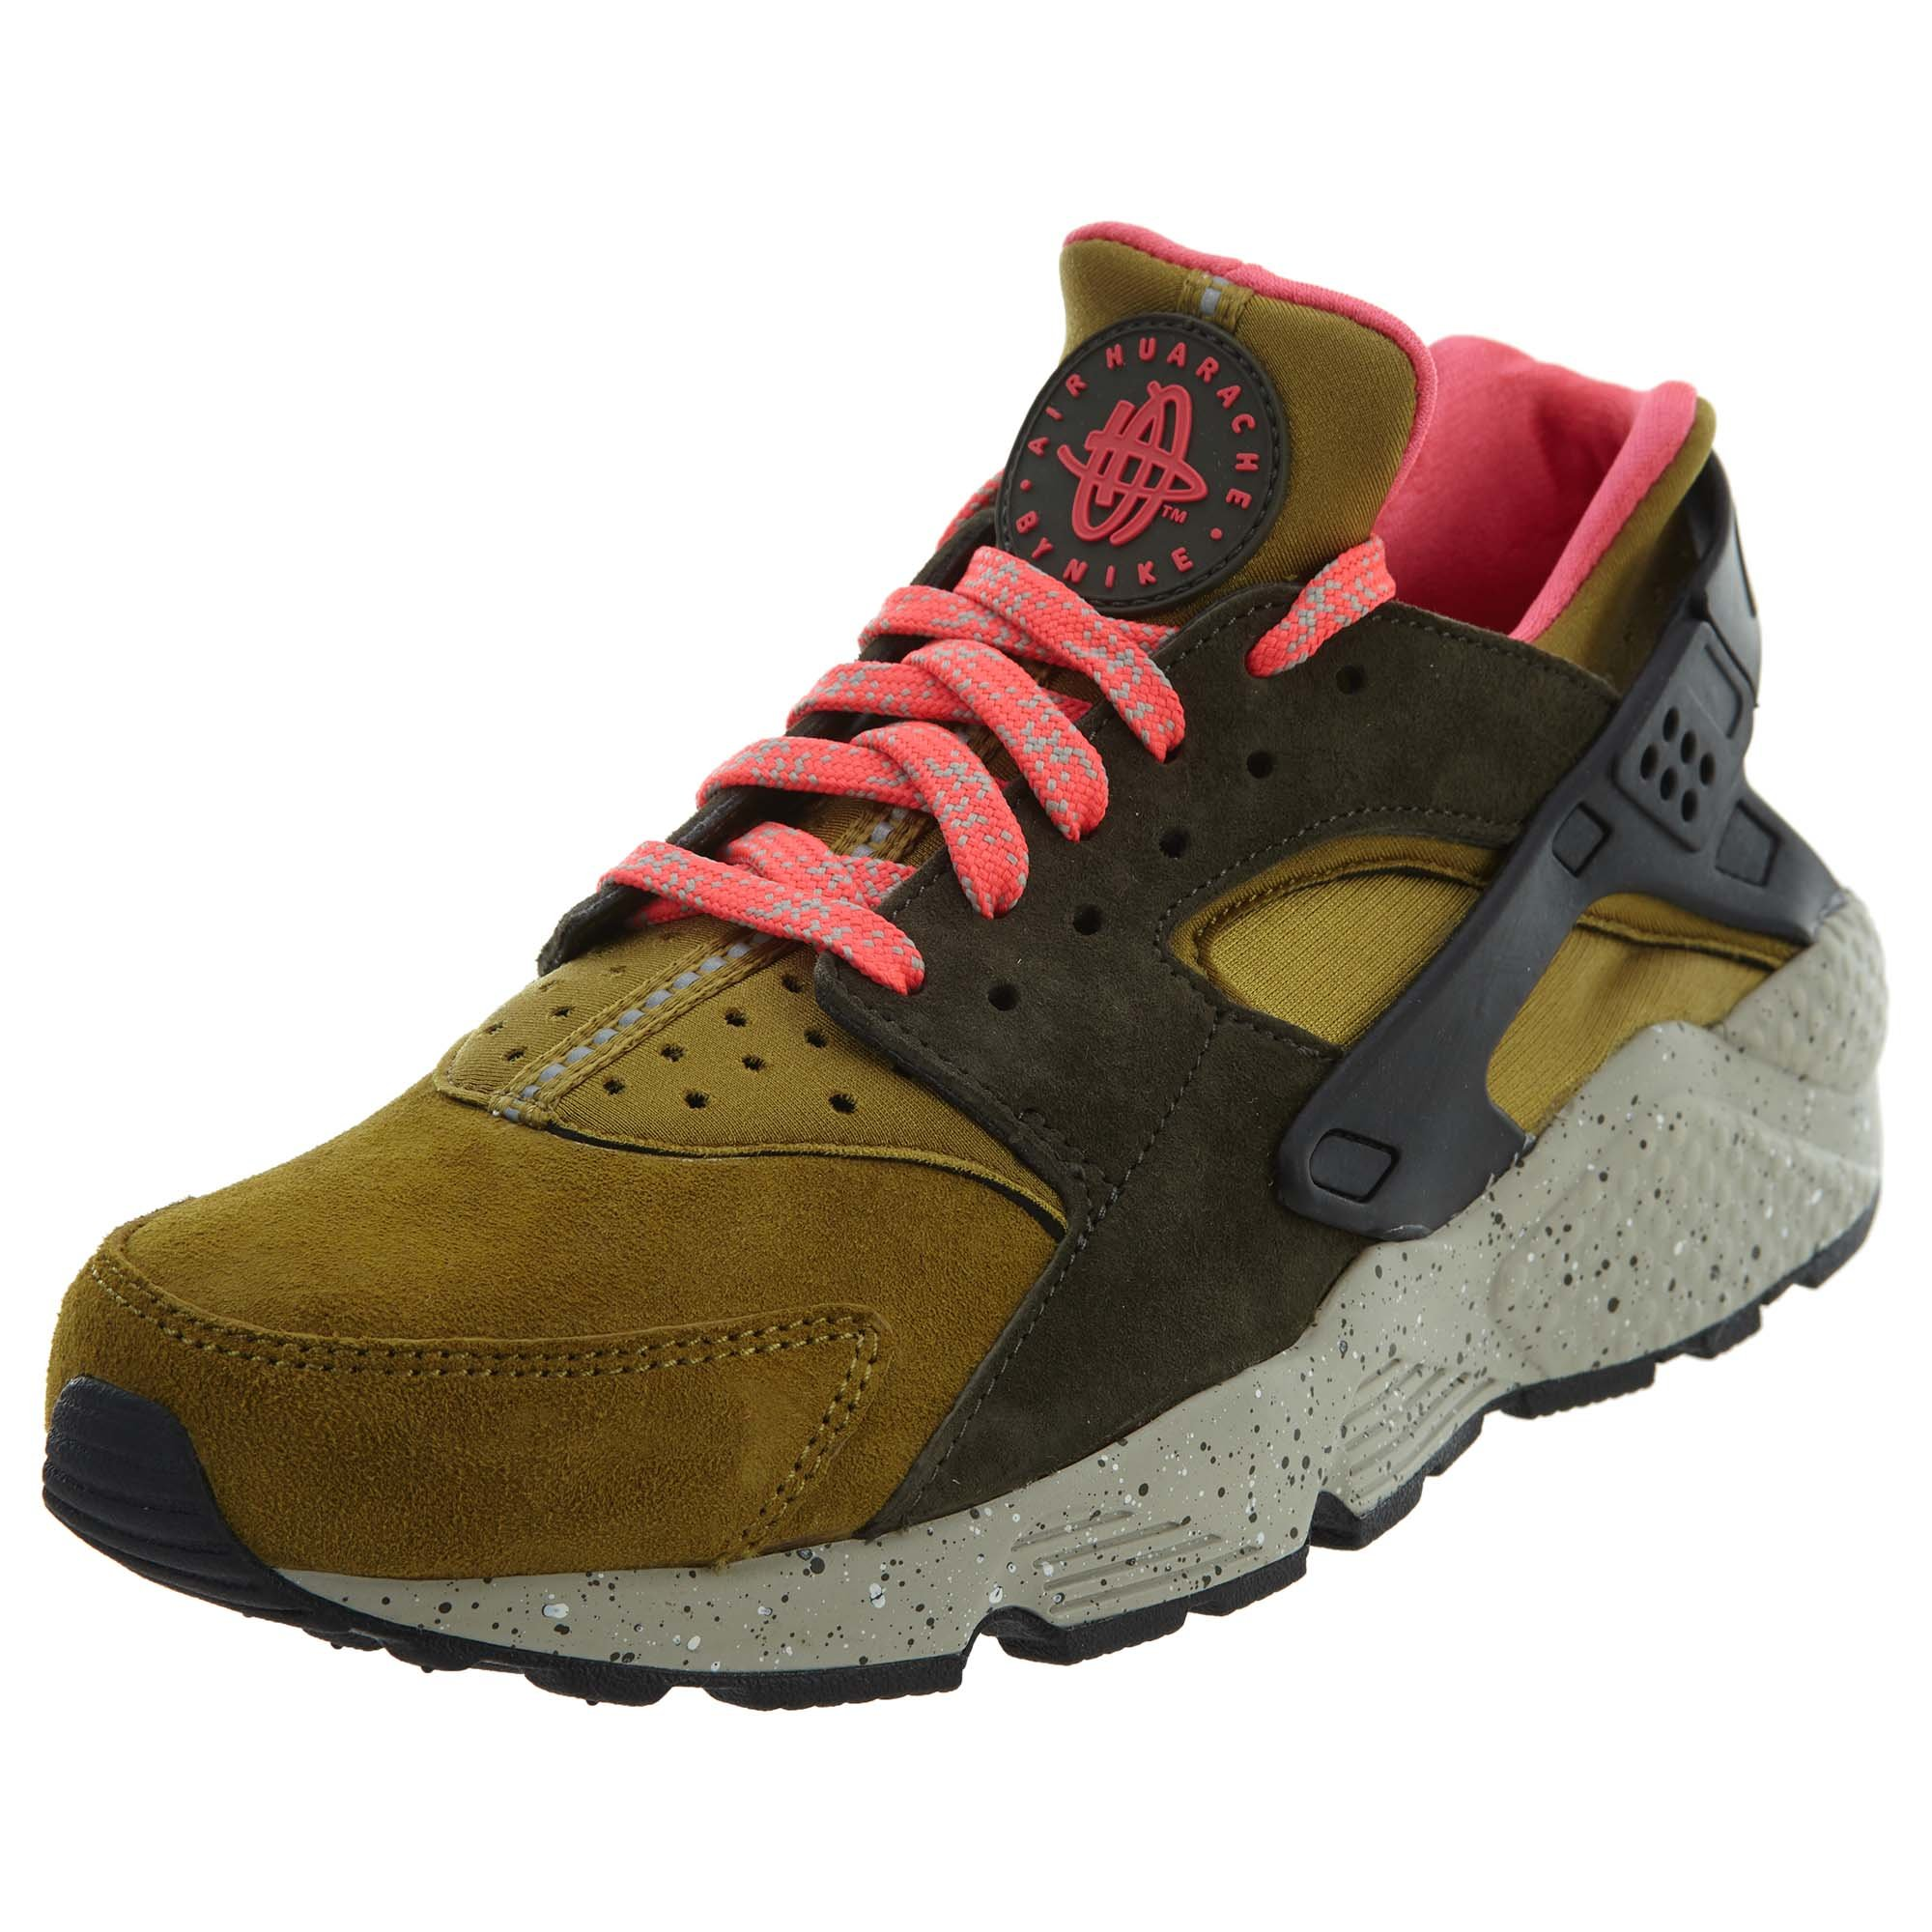 low priced d88b3 0aaca NIKE Men s Air Huarache Run PRM Gymnastics Shoes, Gold (Desert Moss Cobblestone-Cargo  Khaki 302), 6 UK